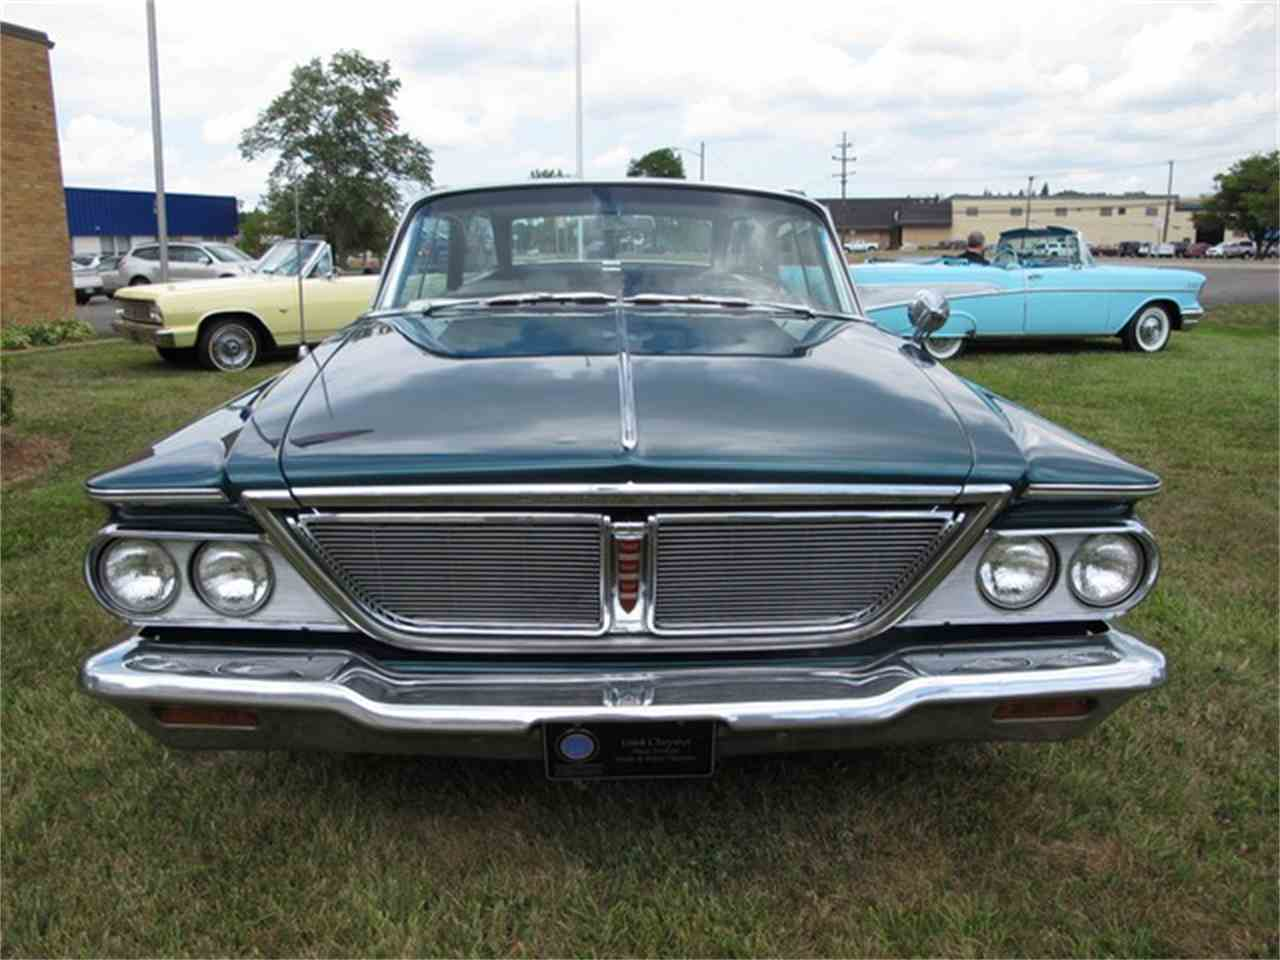 Large Picture of 1964 Chrysler New Yorker located in Michigan - $34,500.00 - J5ND